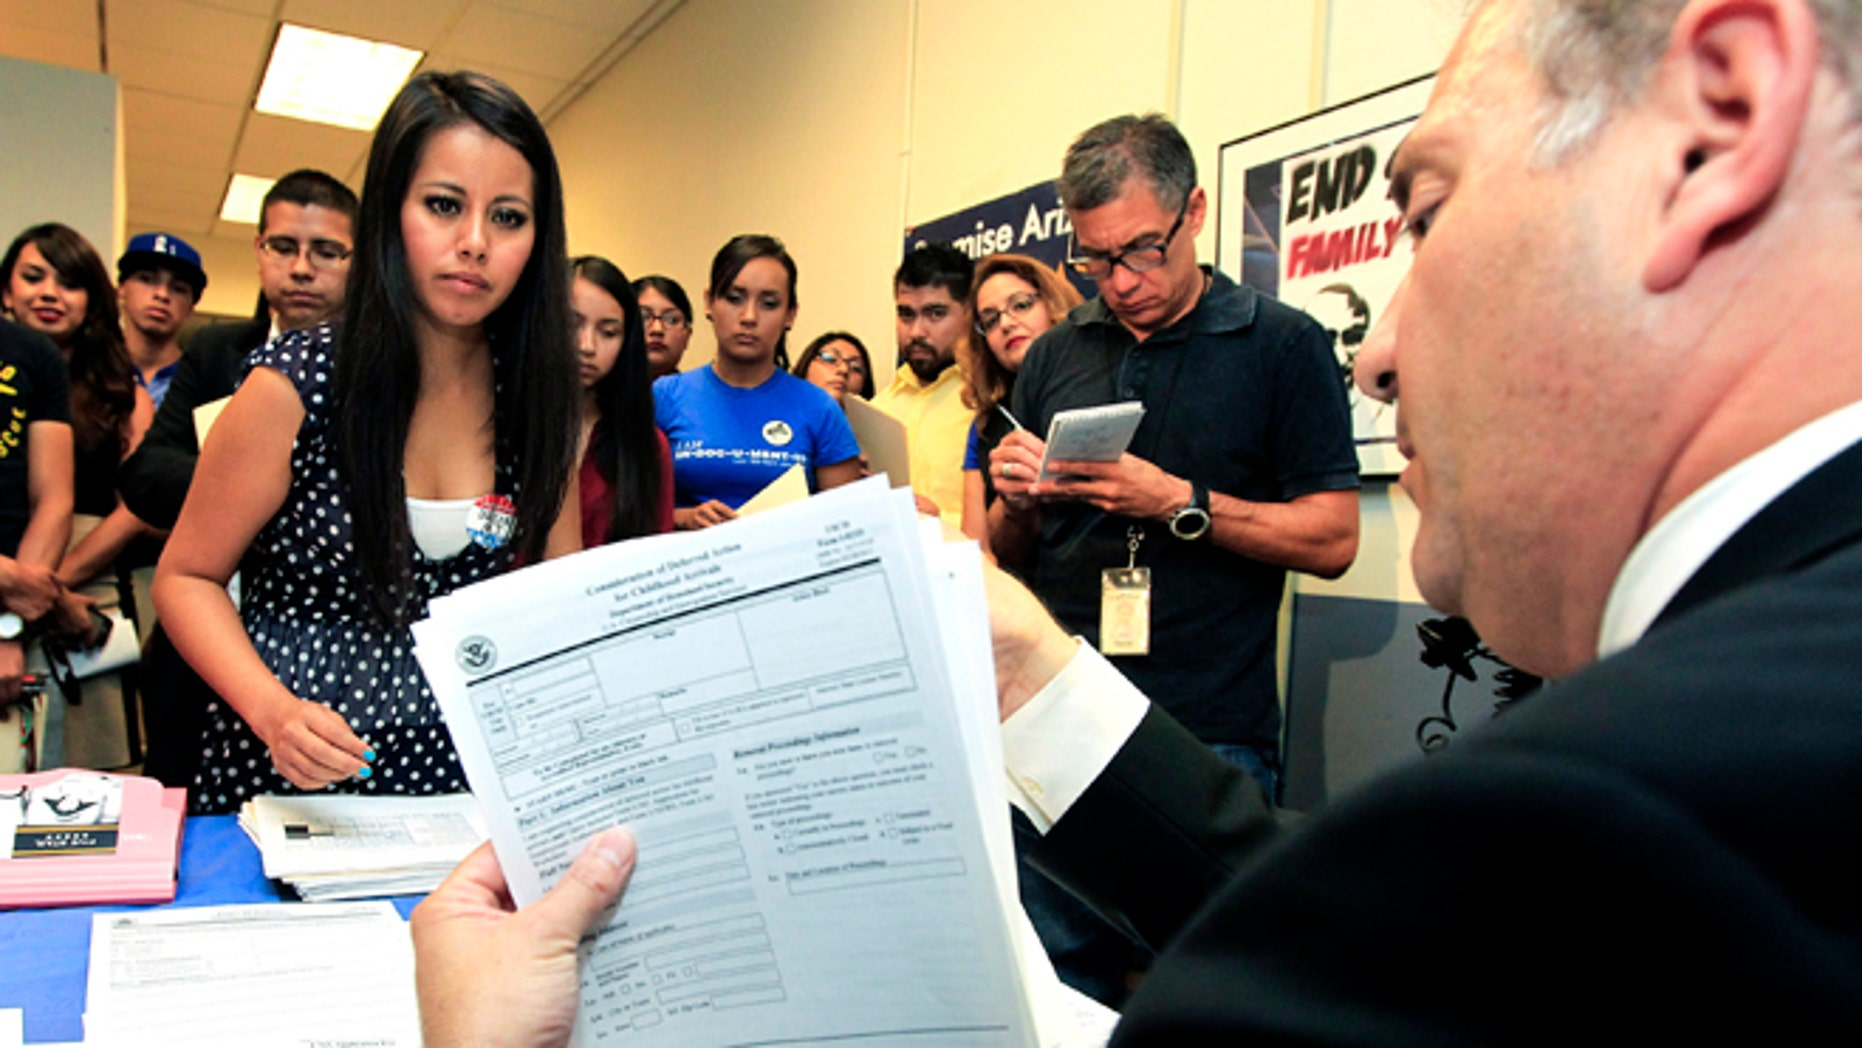 This Aug. 15, 2012 photo shows, Young immigrants, including Gaby Perez, left, hands over all her paperwork to get guidance from immigration attorney Jose Penalosa, right, for a new federal program, called Deferred Action, that would help them avoid deportation in Phoenix.   Schools and consulates have been flooded with requests for documents after President Barack Obama announced a new program allowing young illegal immigrants to apply for two-year renewable work permits. (AP Photo/Ross D. Franklin)